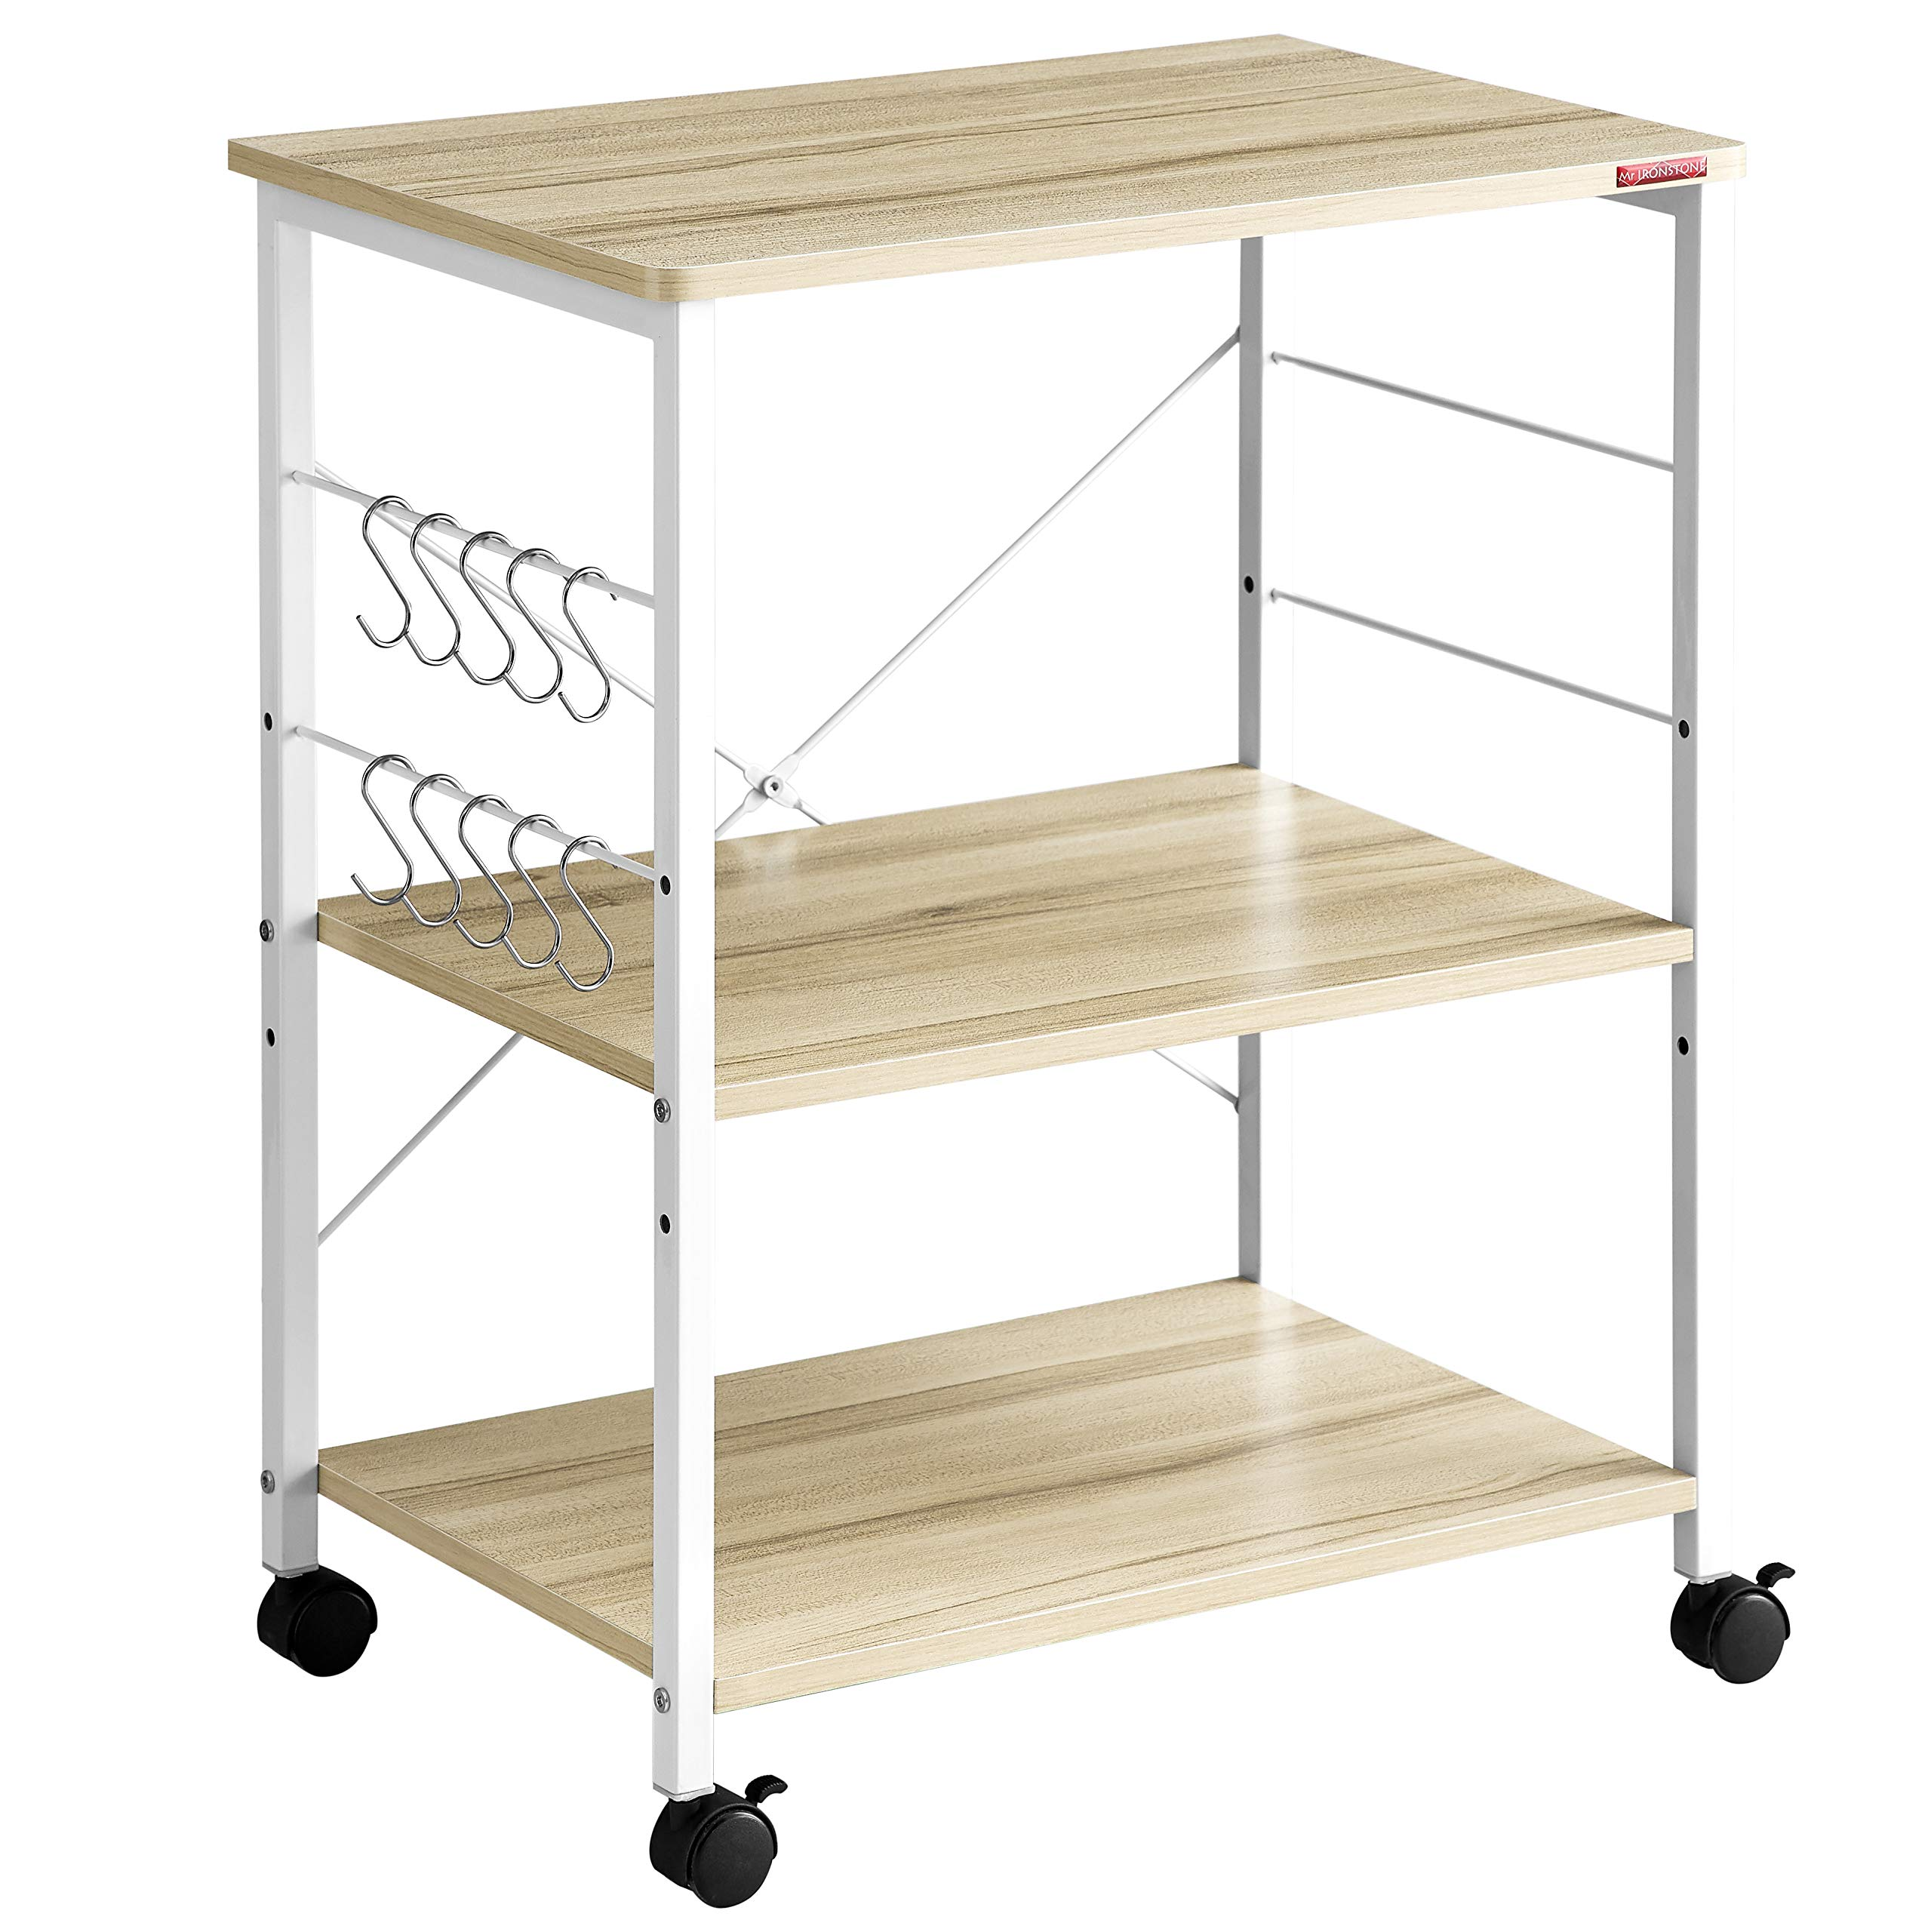 Mr IRONSTONE 3-Tier Kitchen Baker's Rack Utility Microwave Oven Stand Storage Cart Workstation Shelf(Light Beige Top+White Metal Frame) by Mr IRONSTONE